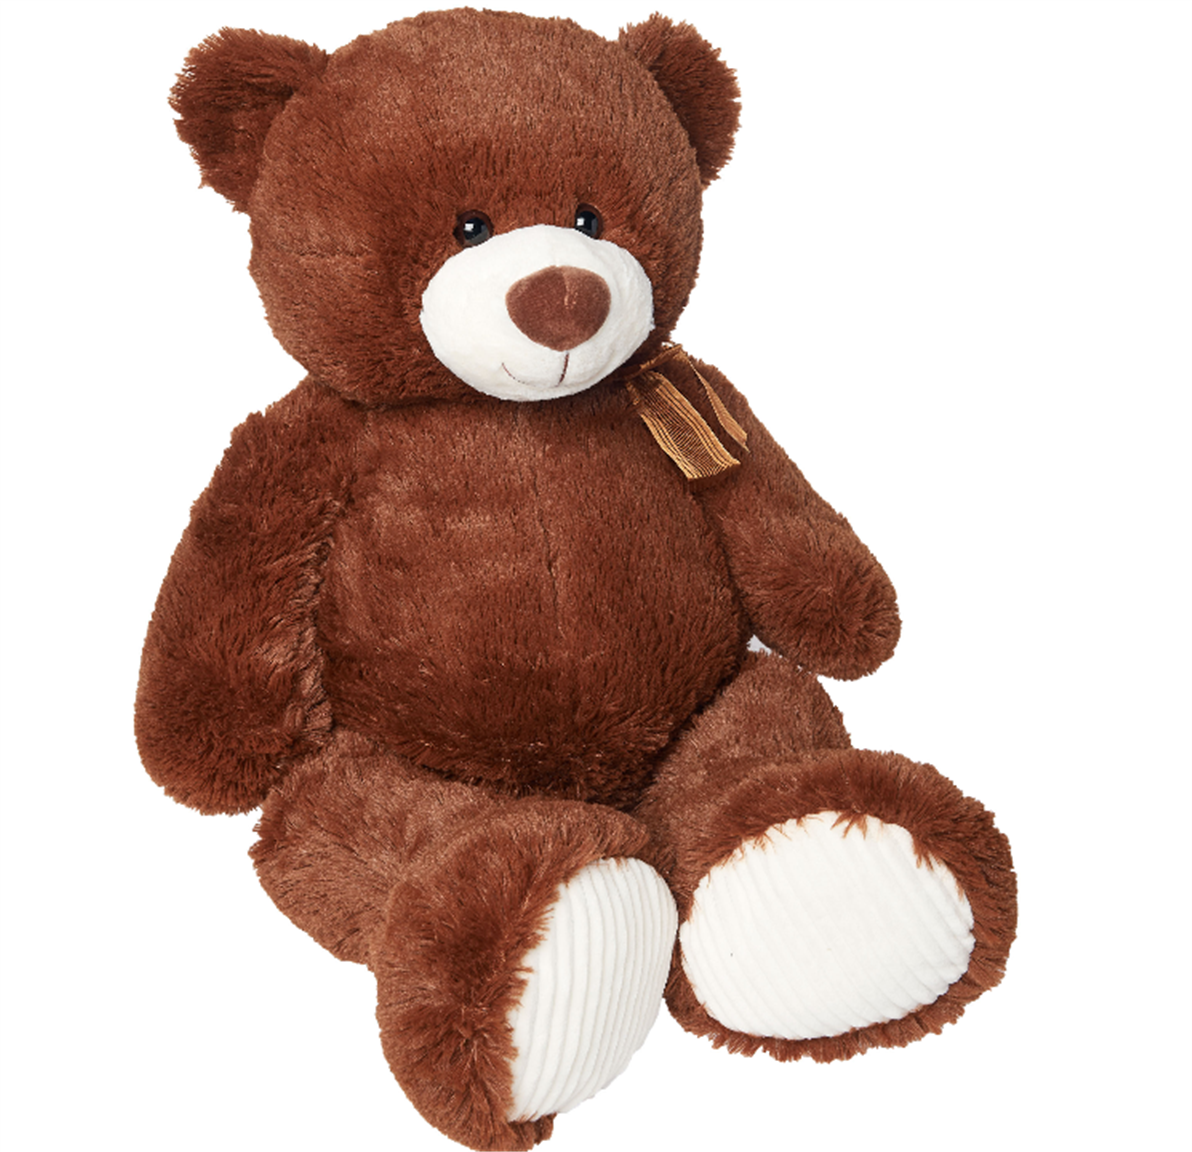 Walmart – Way to Celebrate Valentine's Day Bear Only $6.19, Reg 24.00 + Free Store Pickup!